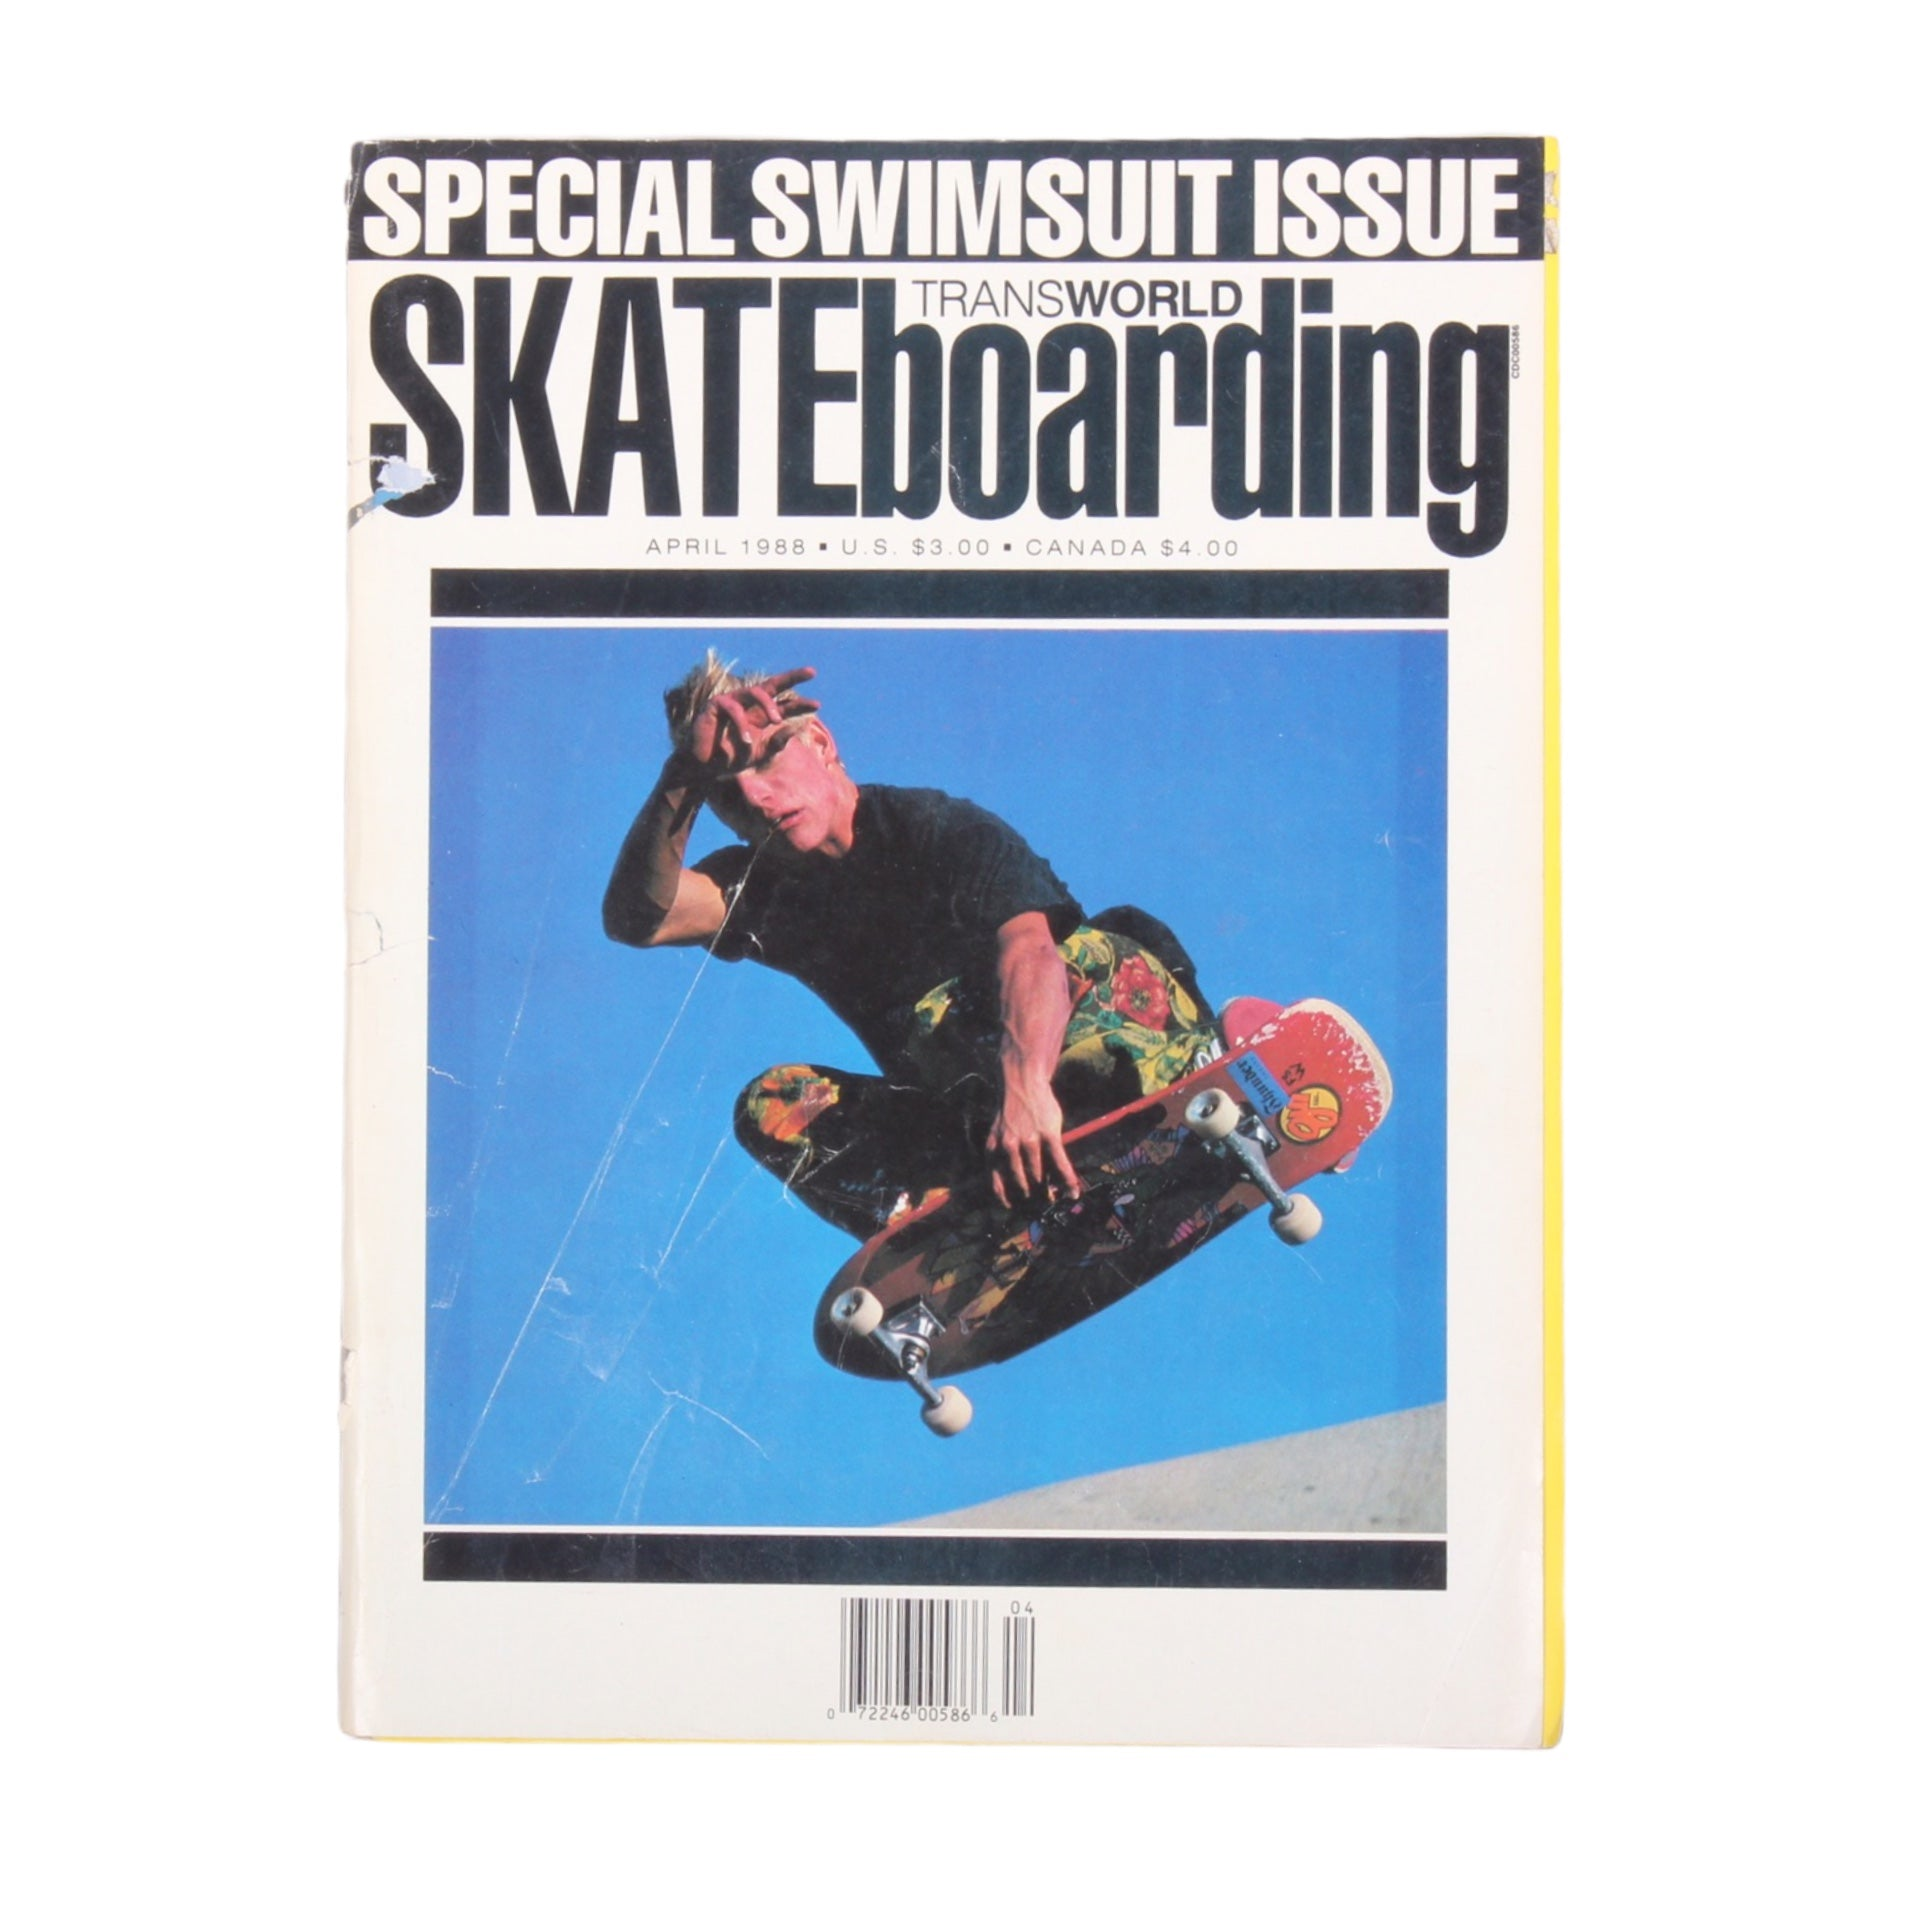 Overripe Transworld Skateboarding Magazine TWS April 1988